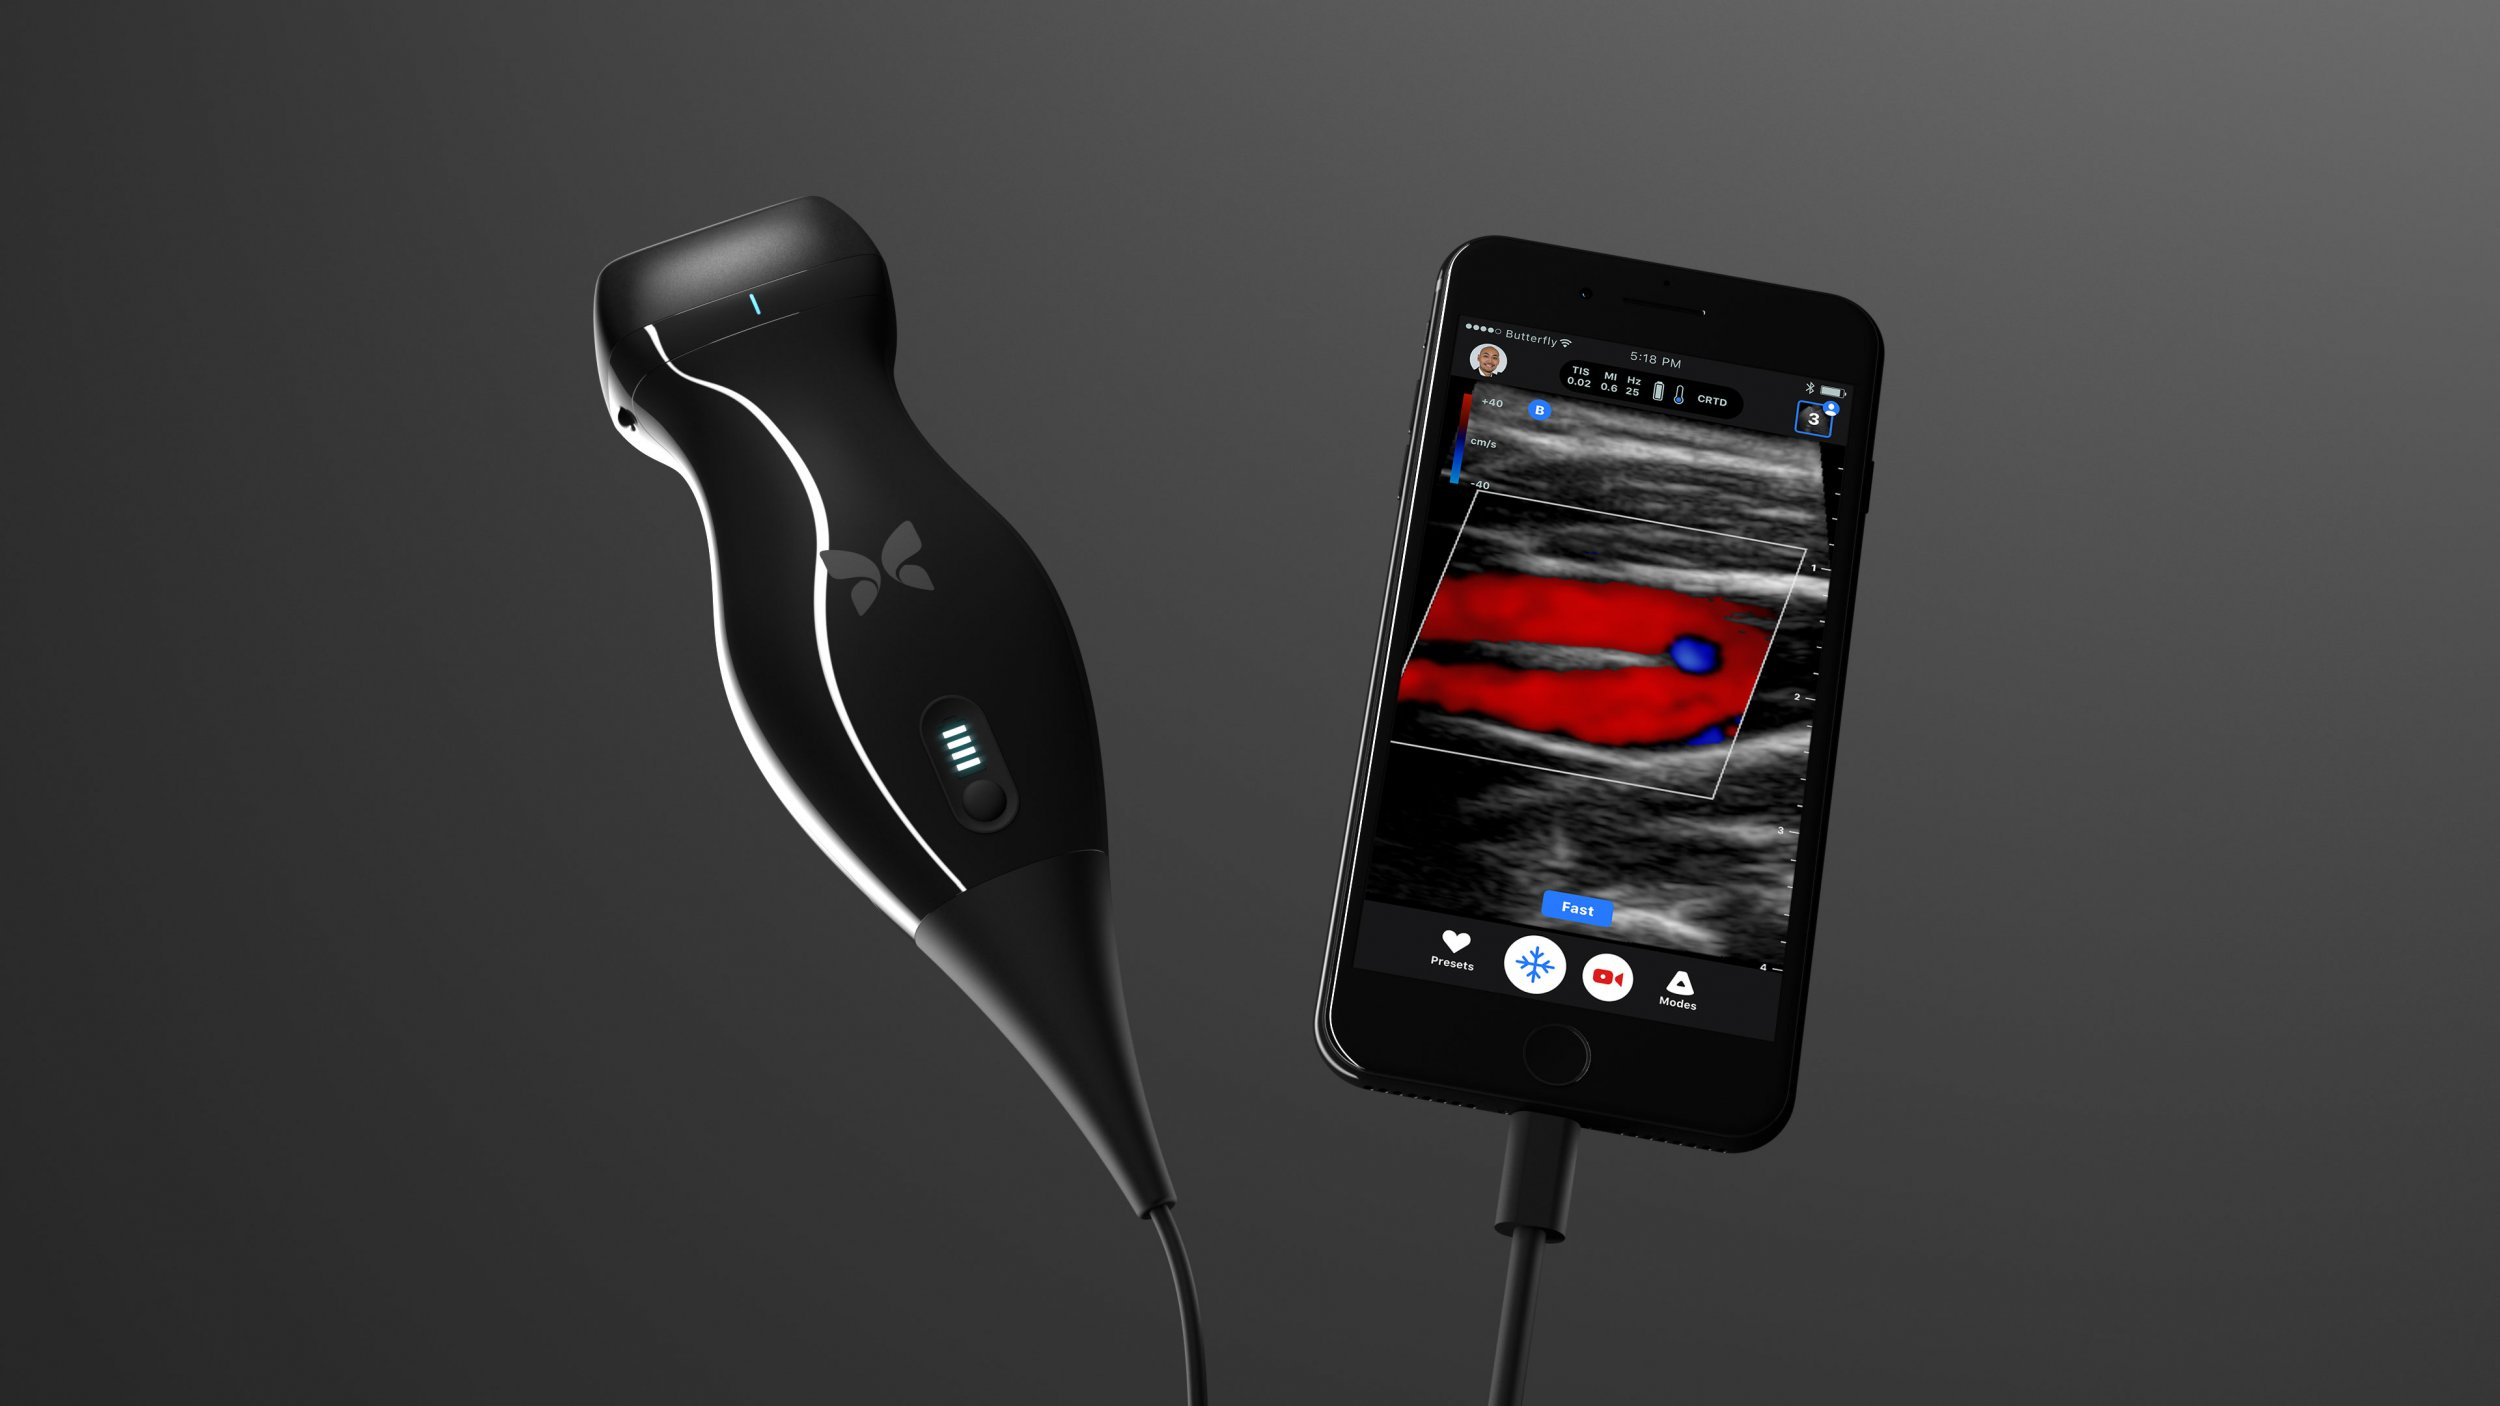 No, This iPhone-Based Ultrasound Doesn't Mean You Should